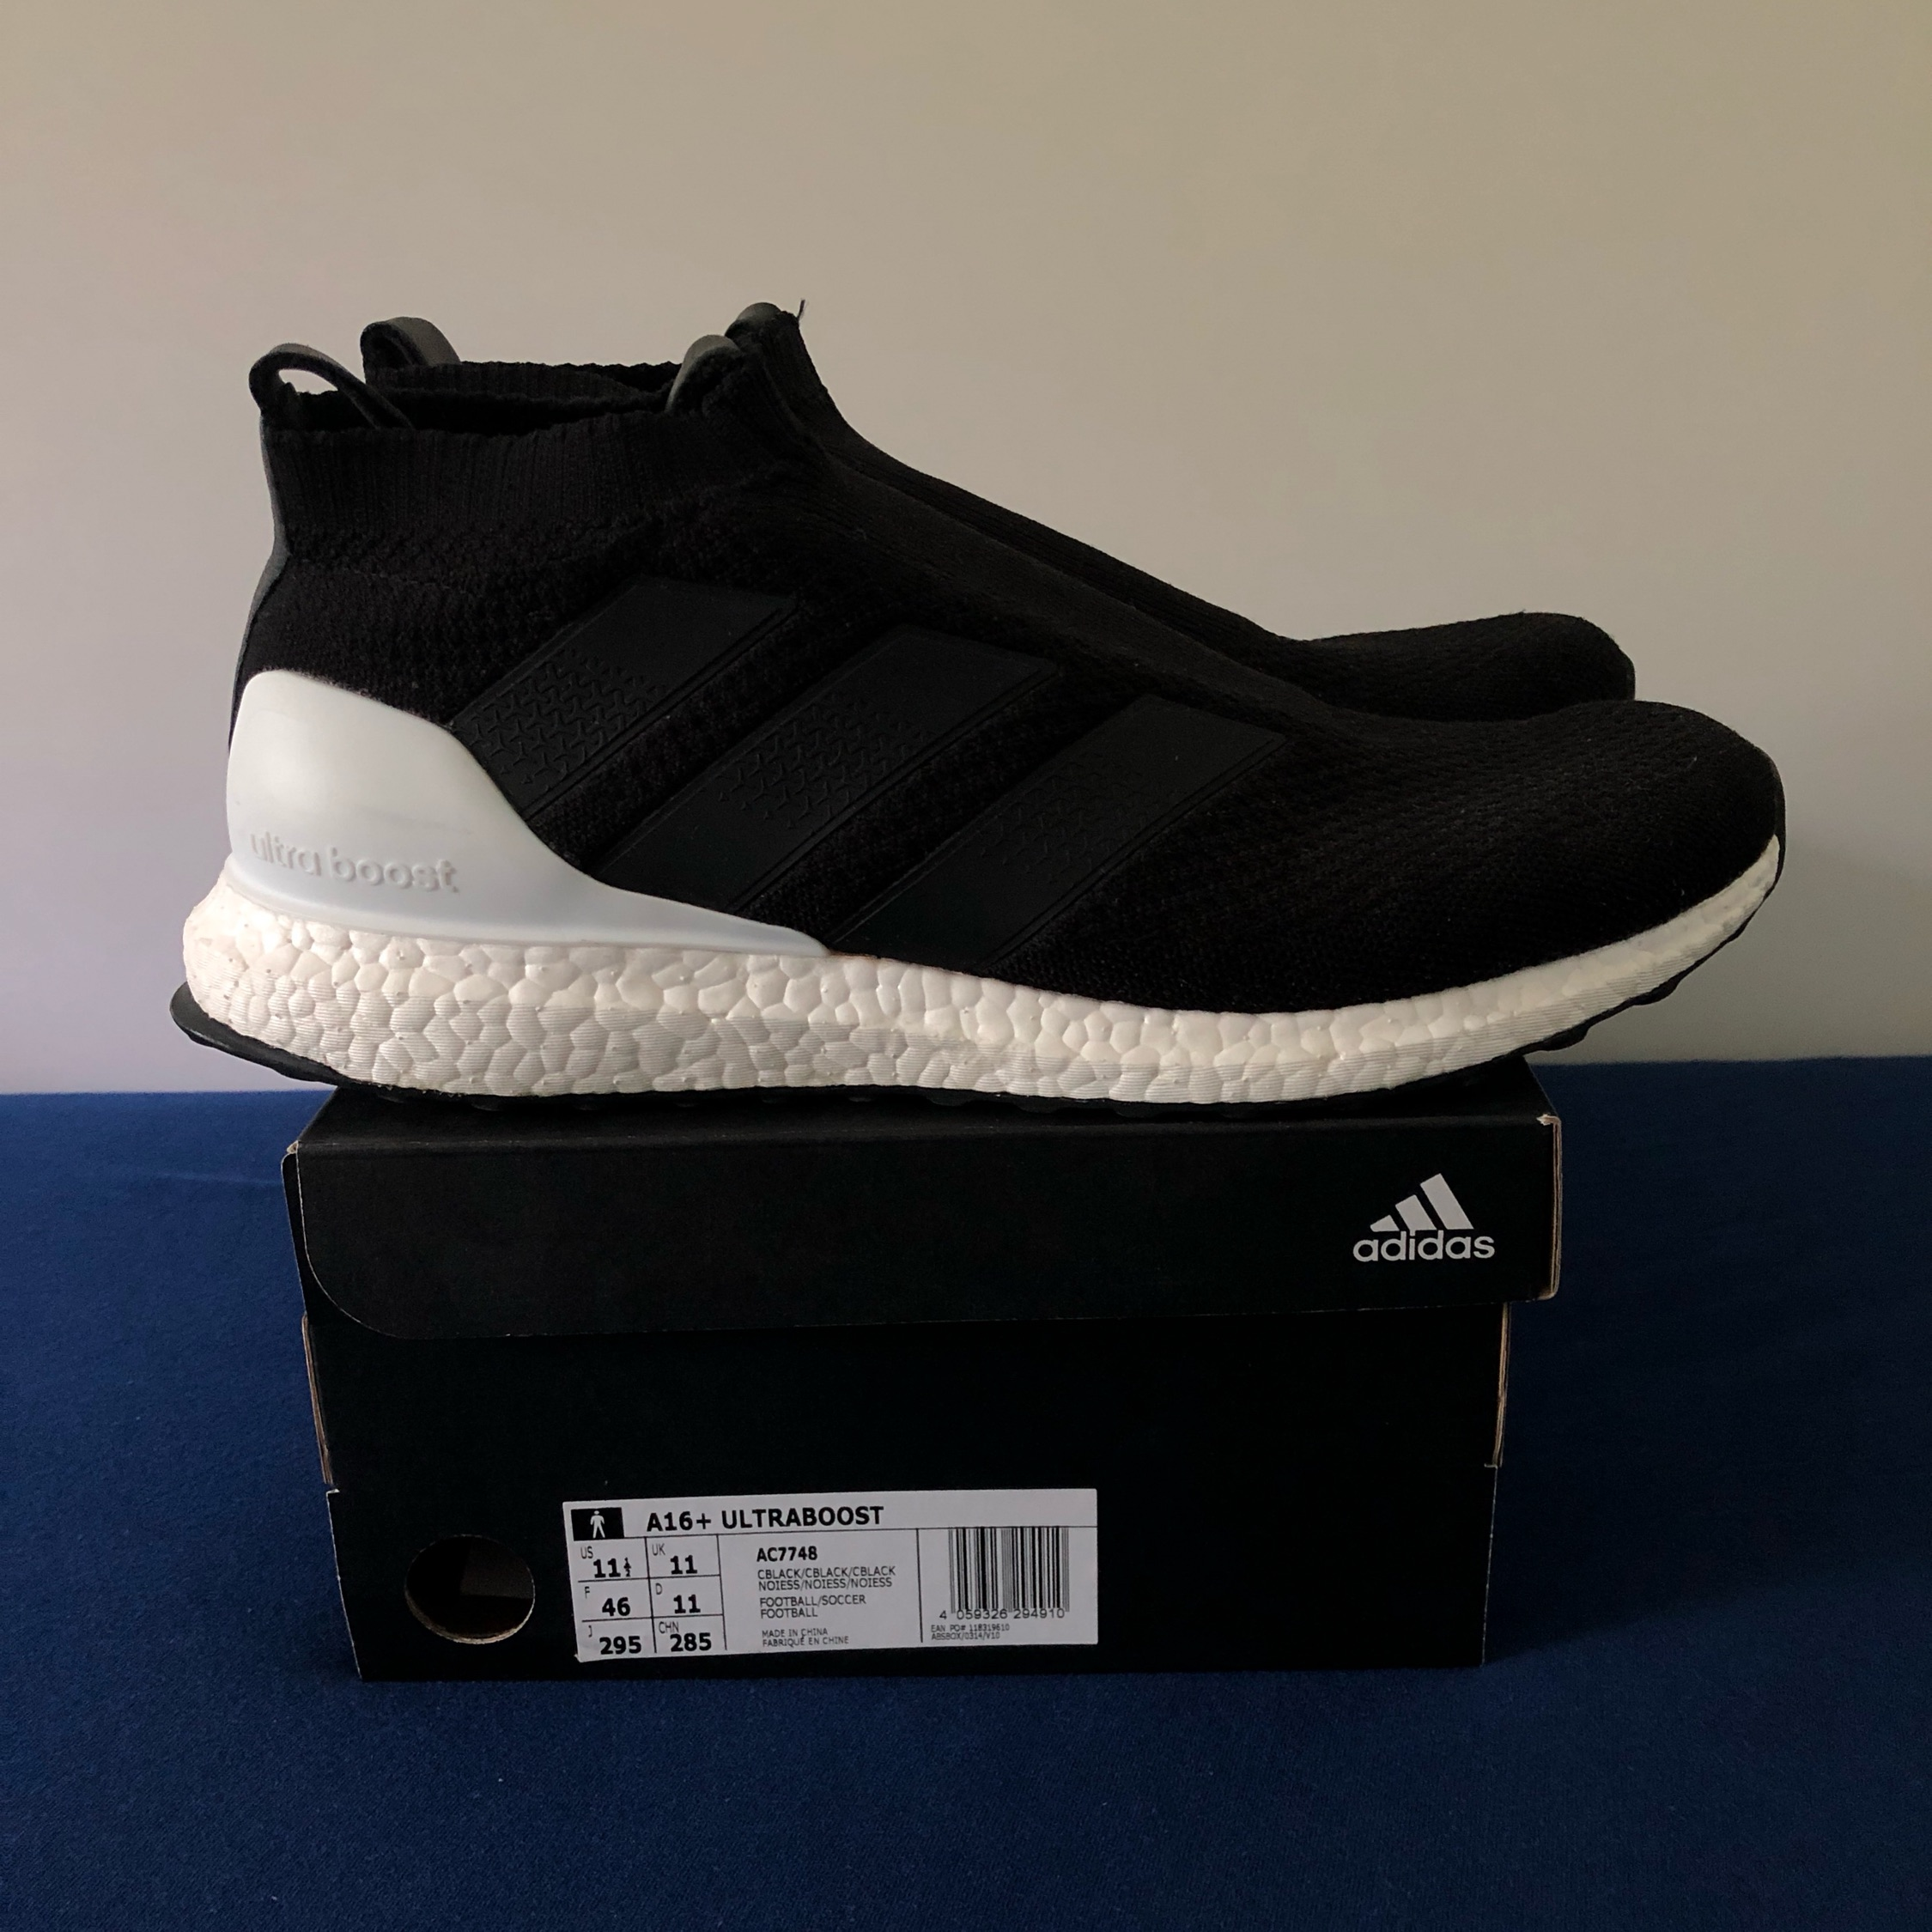 42 sports] Adidas A16+Ultraboost casual running shoes AC7748